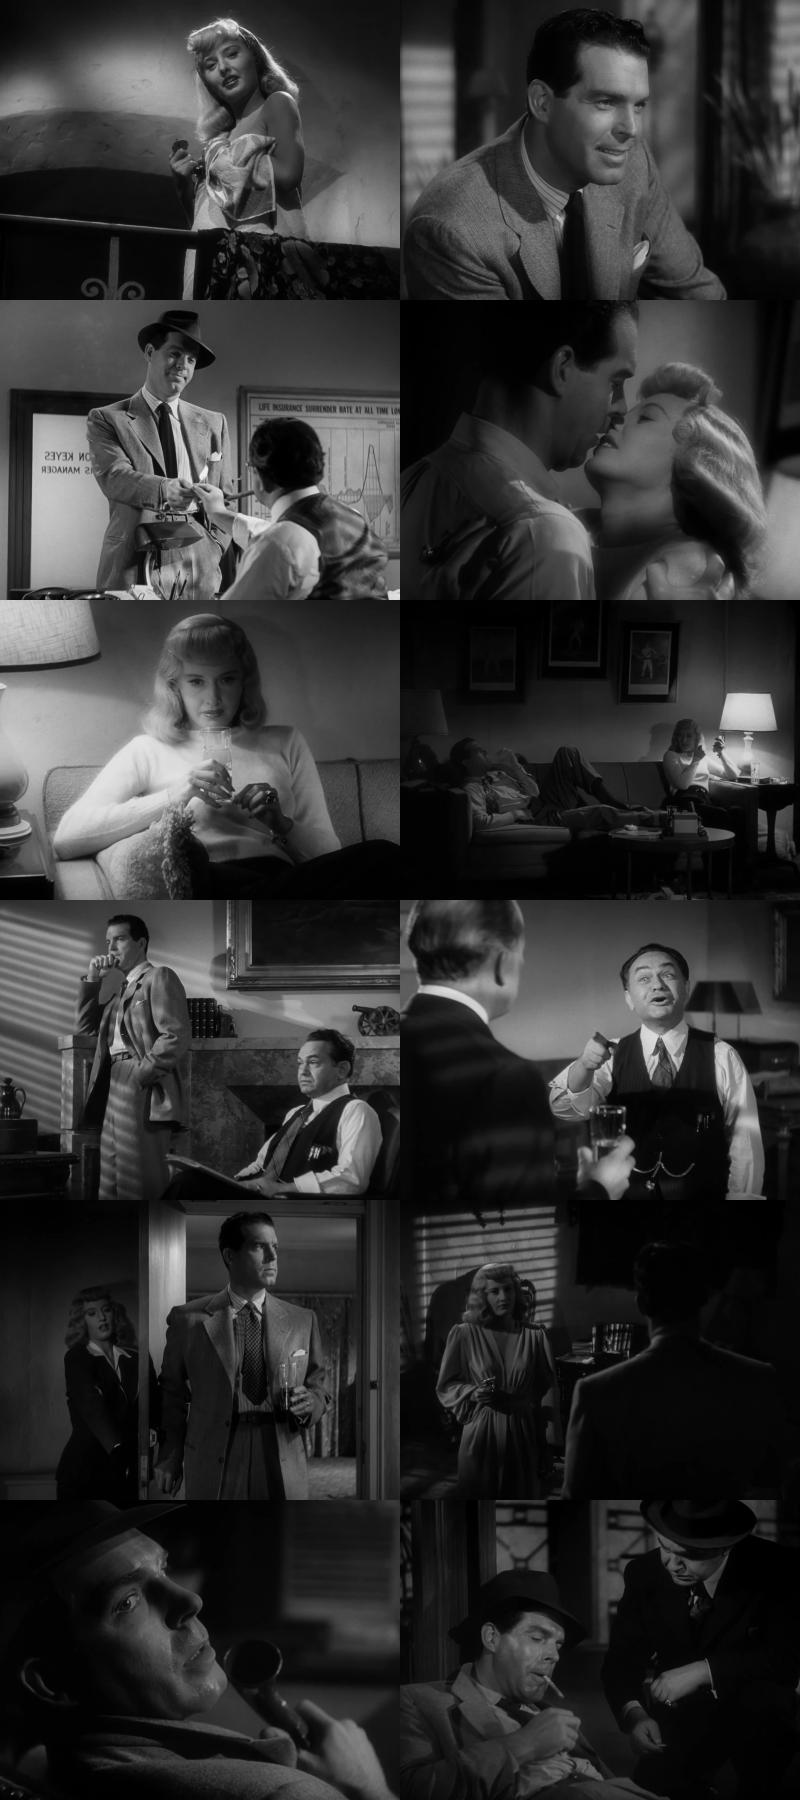 http://watershade.net/public/double-indemnity.jpg